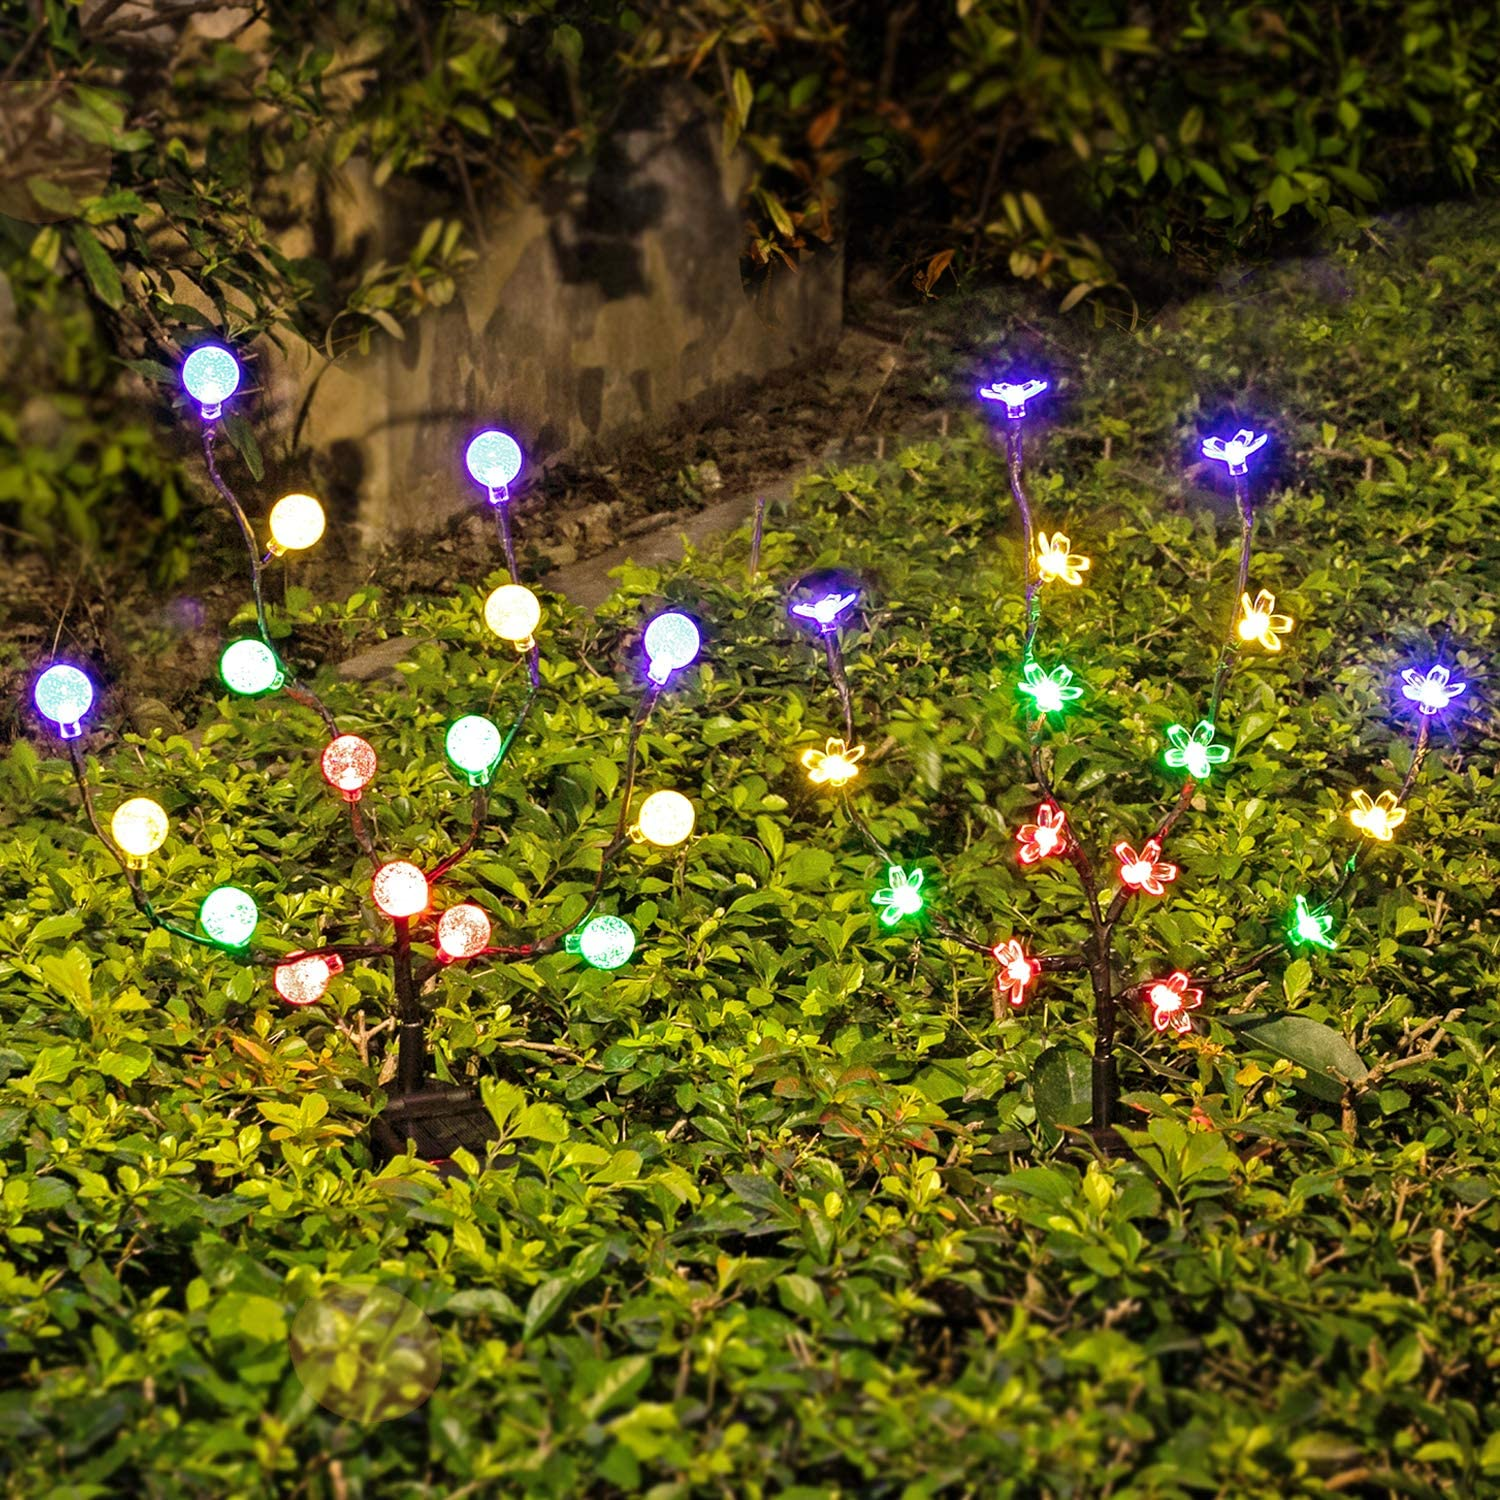 Solar Lights Outdoor - New Upgraded LED Solar Garden Lights, 2 Pack Solar Stake Lights Waterproof Colored Fairy Landscape Tree Lighting for Yard, Patio, Garden, Holiday Decoration (16 LED)